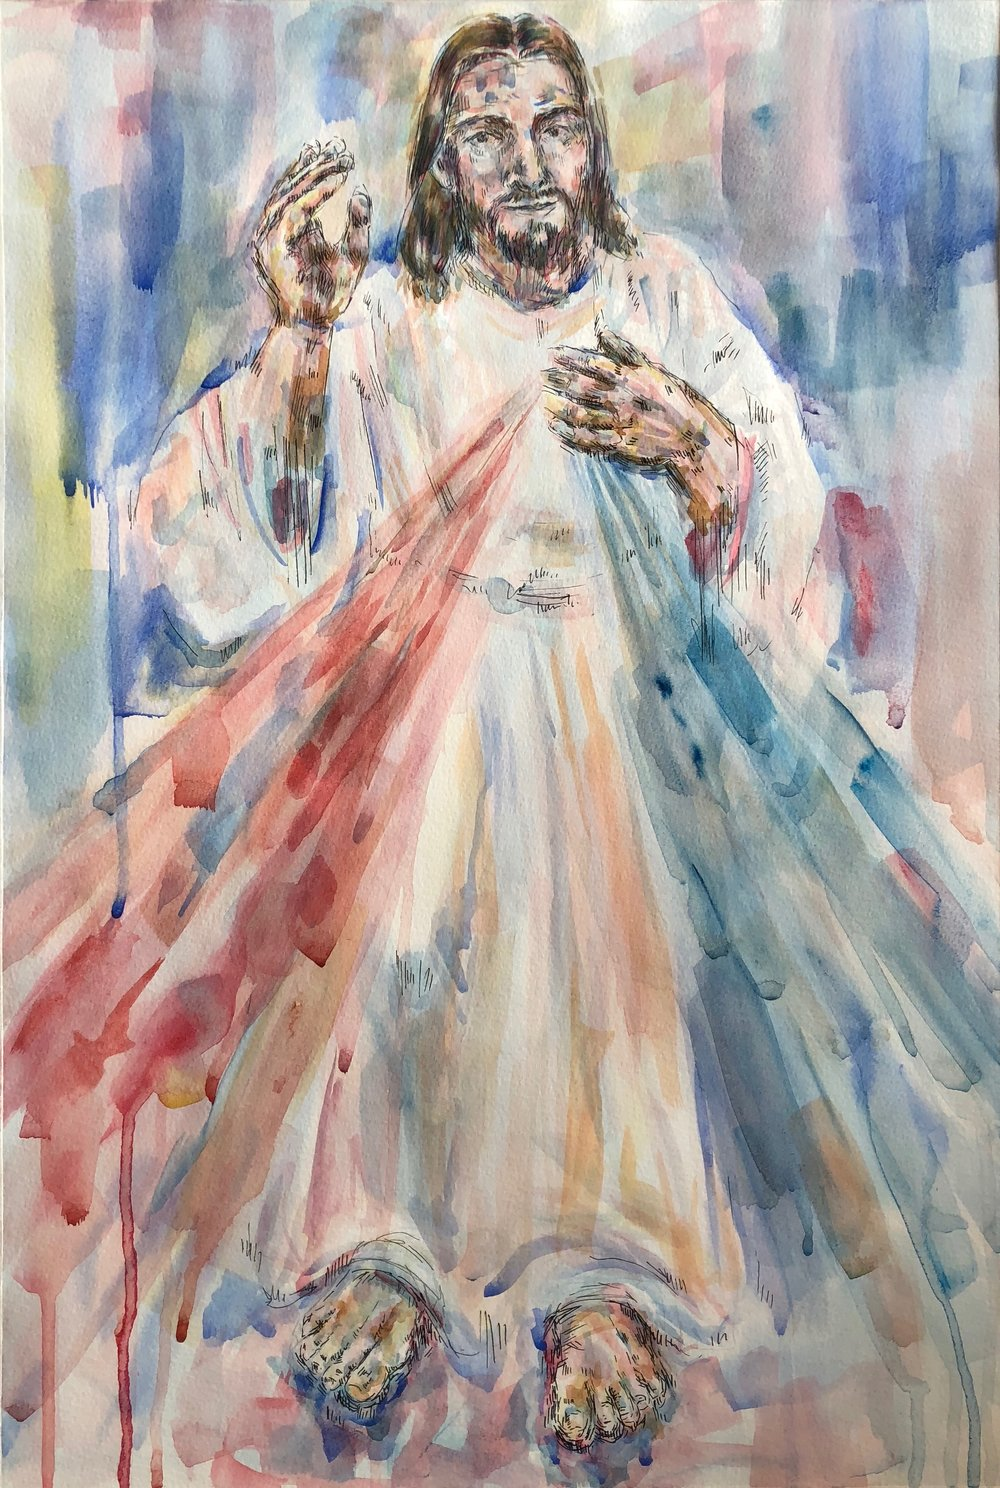 Divine Mercy commission for St. Tom's, Purdue University